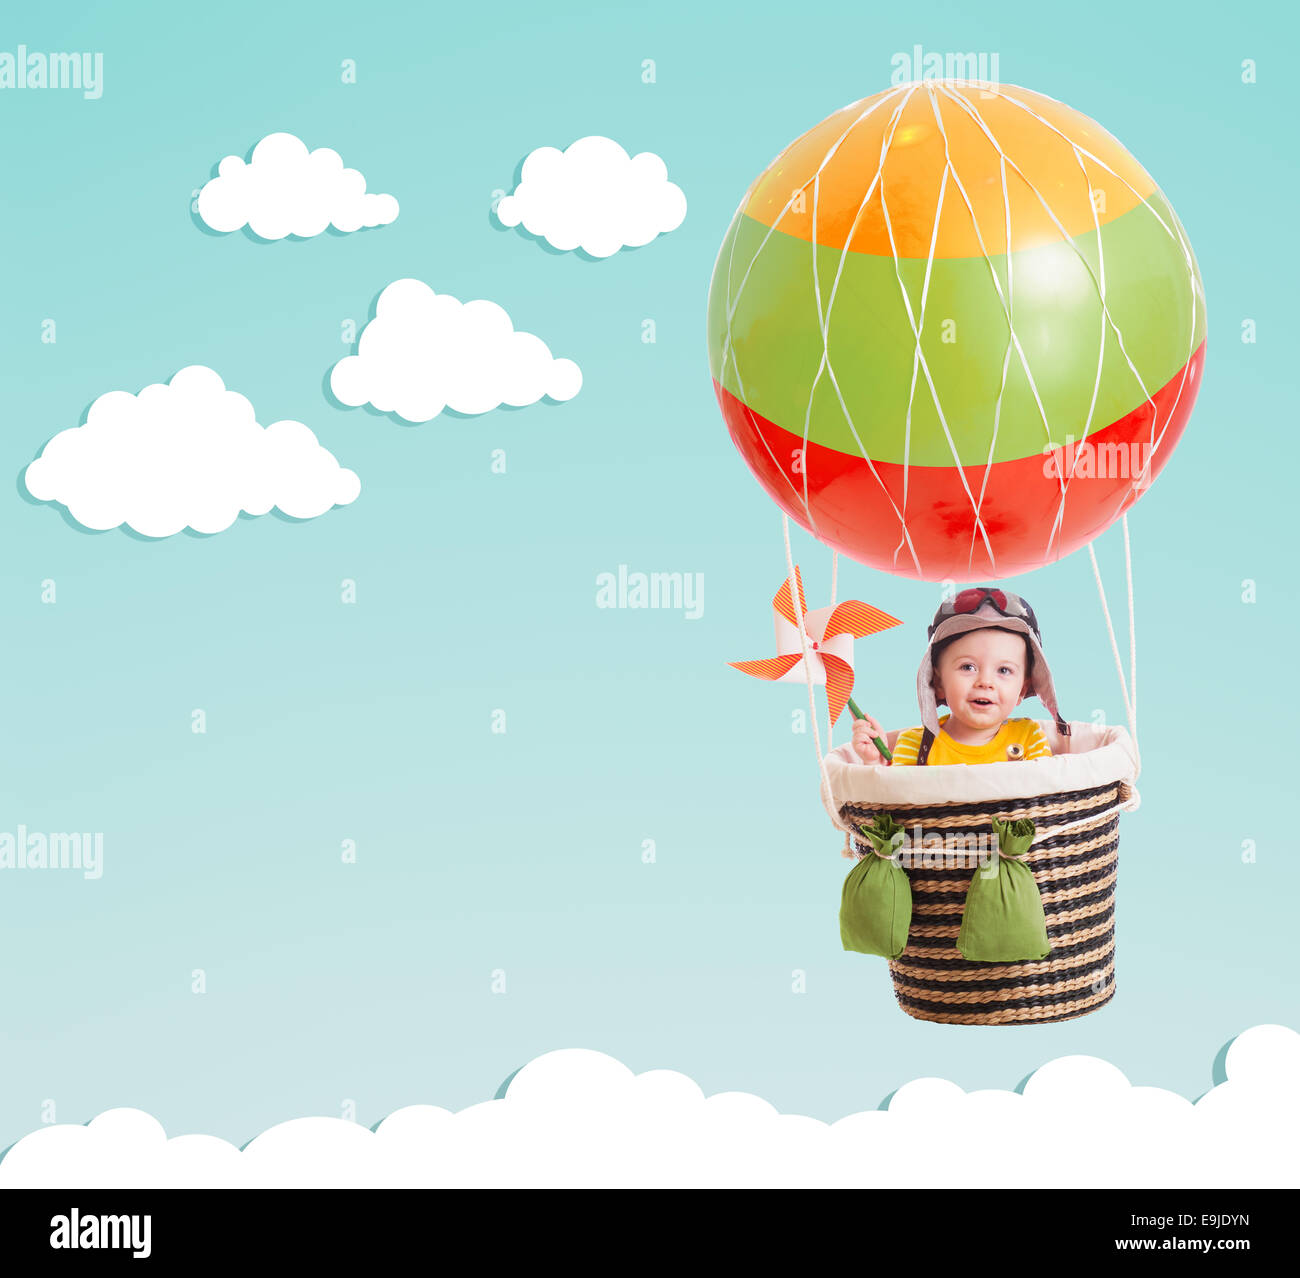 cute kid on hot air balloon in the blue sky Stock Photo